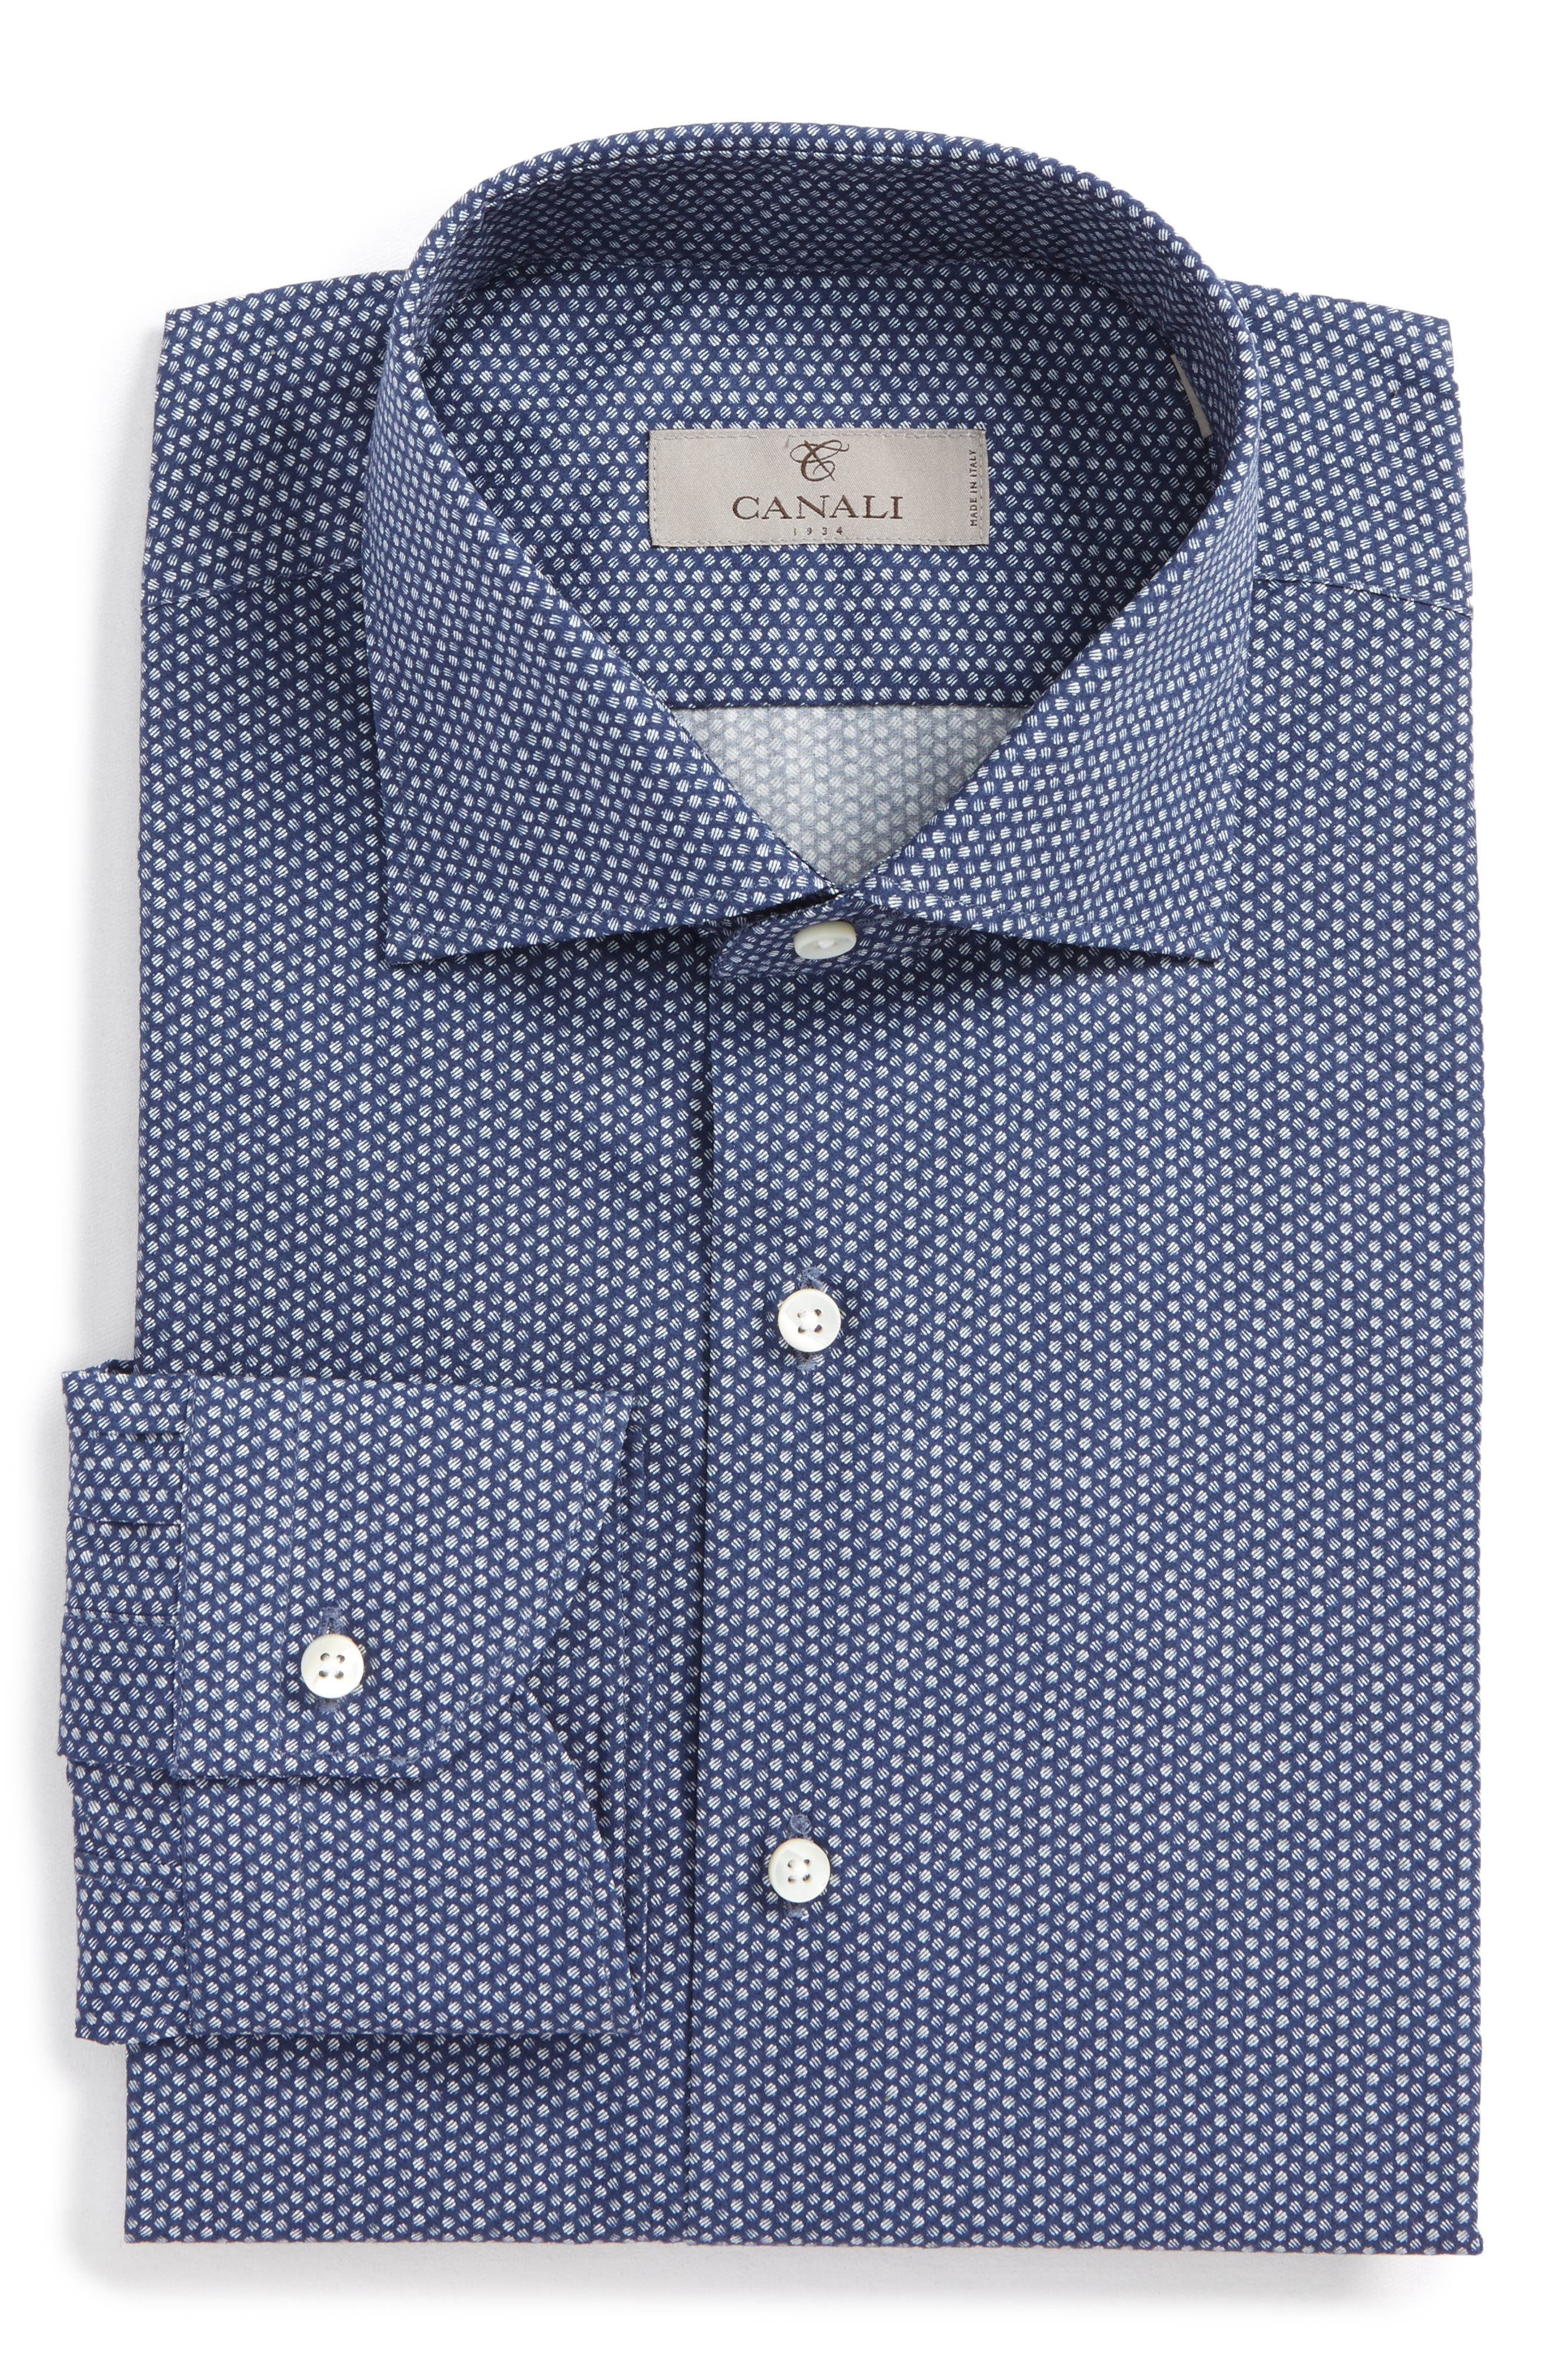 Alternate Image 1 Selected - Canali Regular Fit Dot Dress Shirt